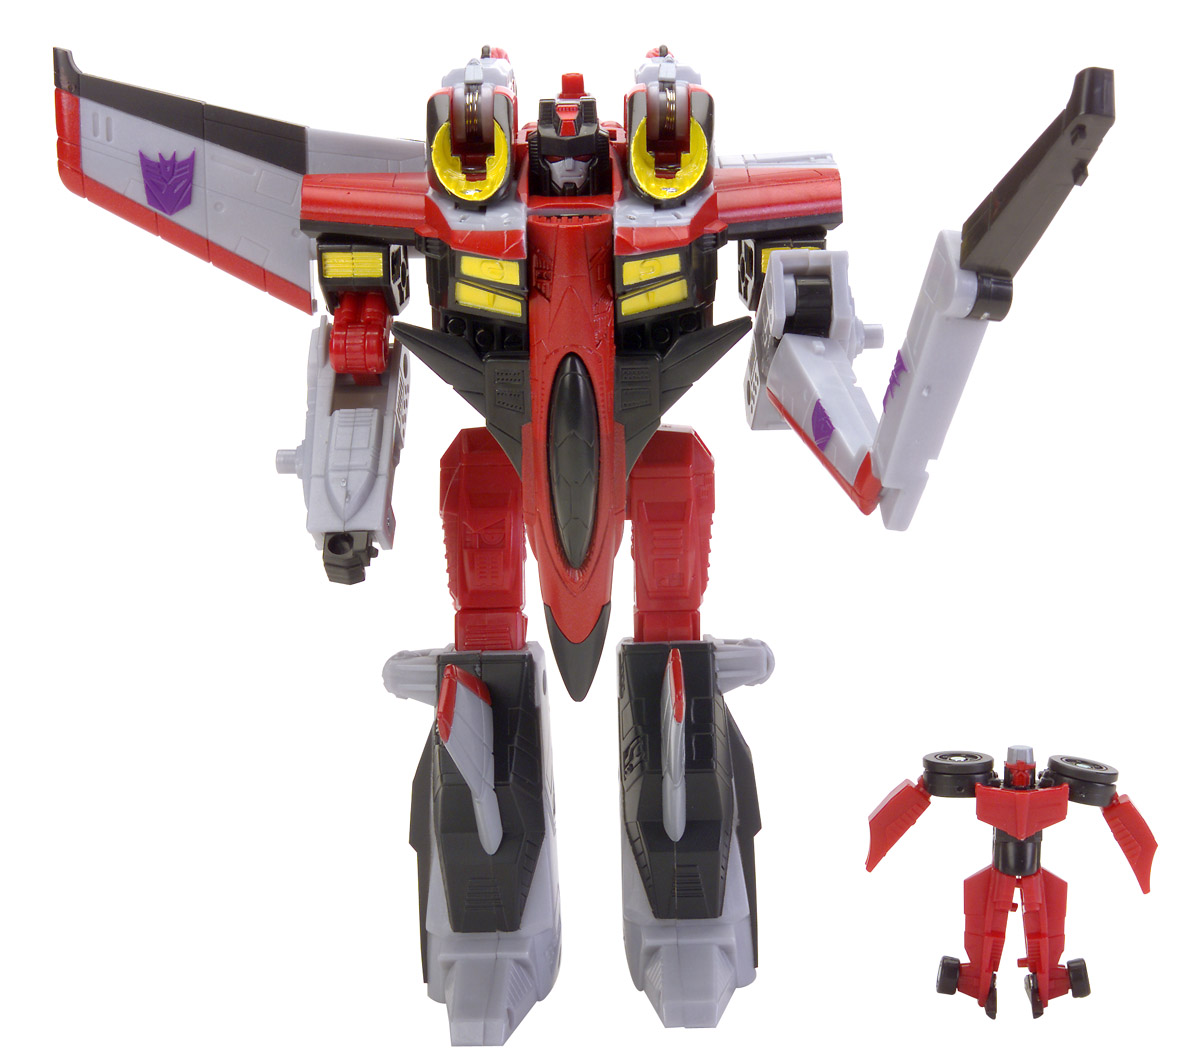 Starscream with Swindle - Transformers Toys - TFW2005